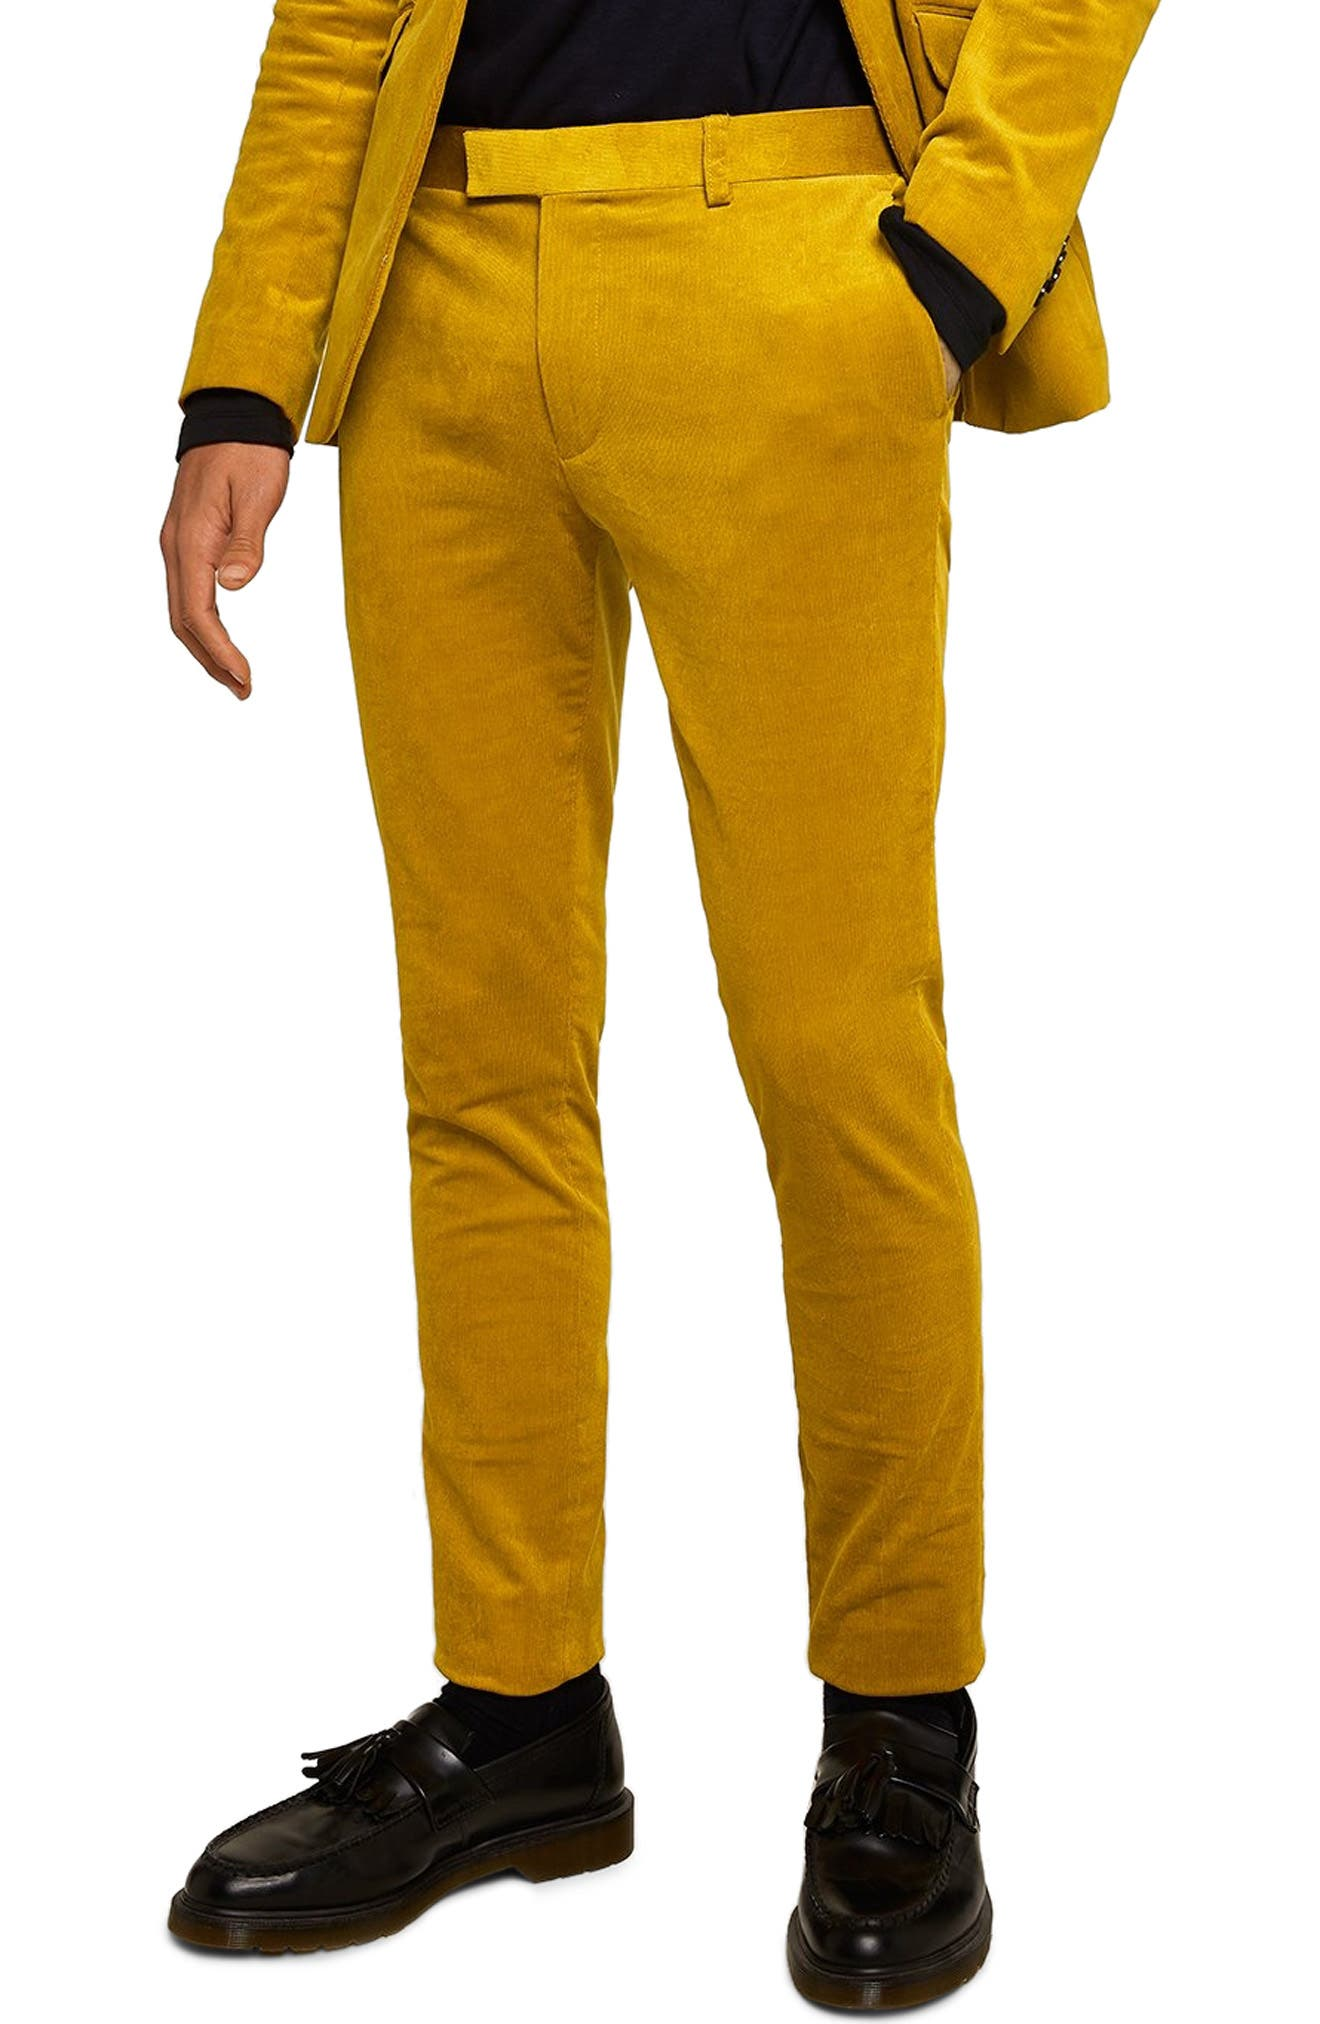 Super Skinny Fit Corduroy Trousers,                         Main,                         color, YELLOW